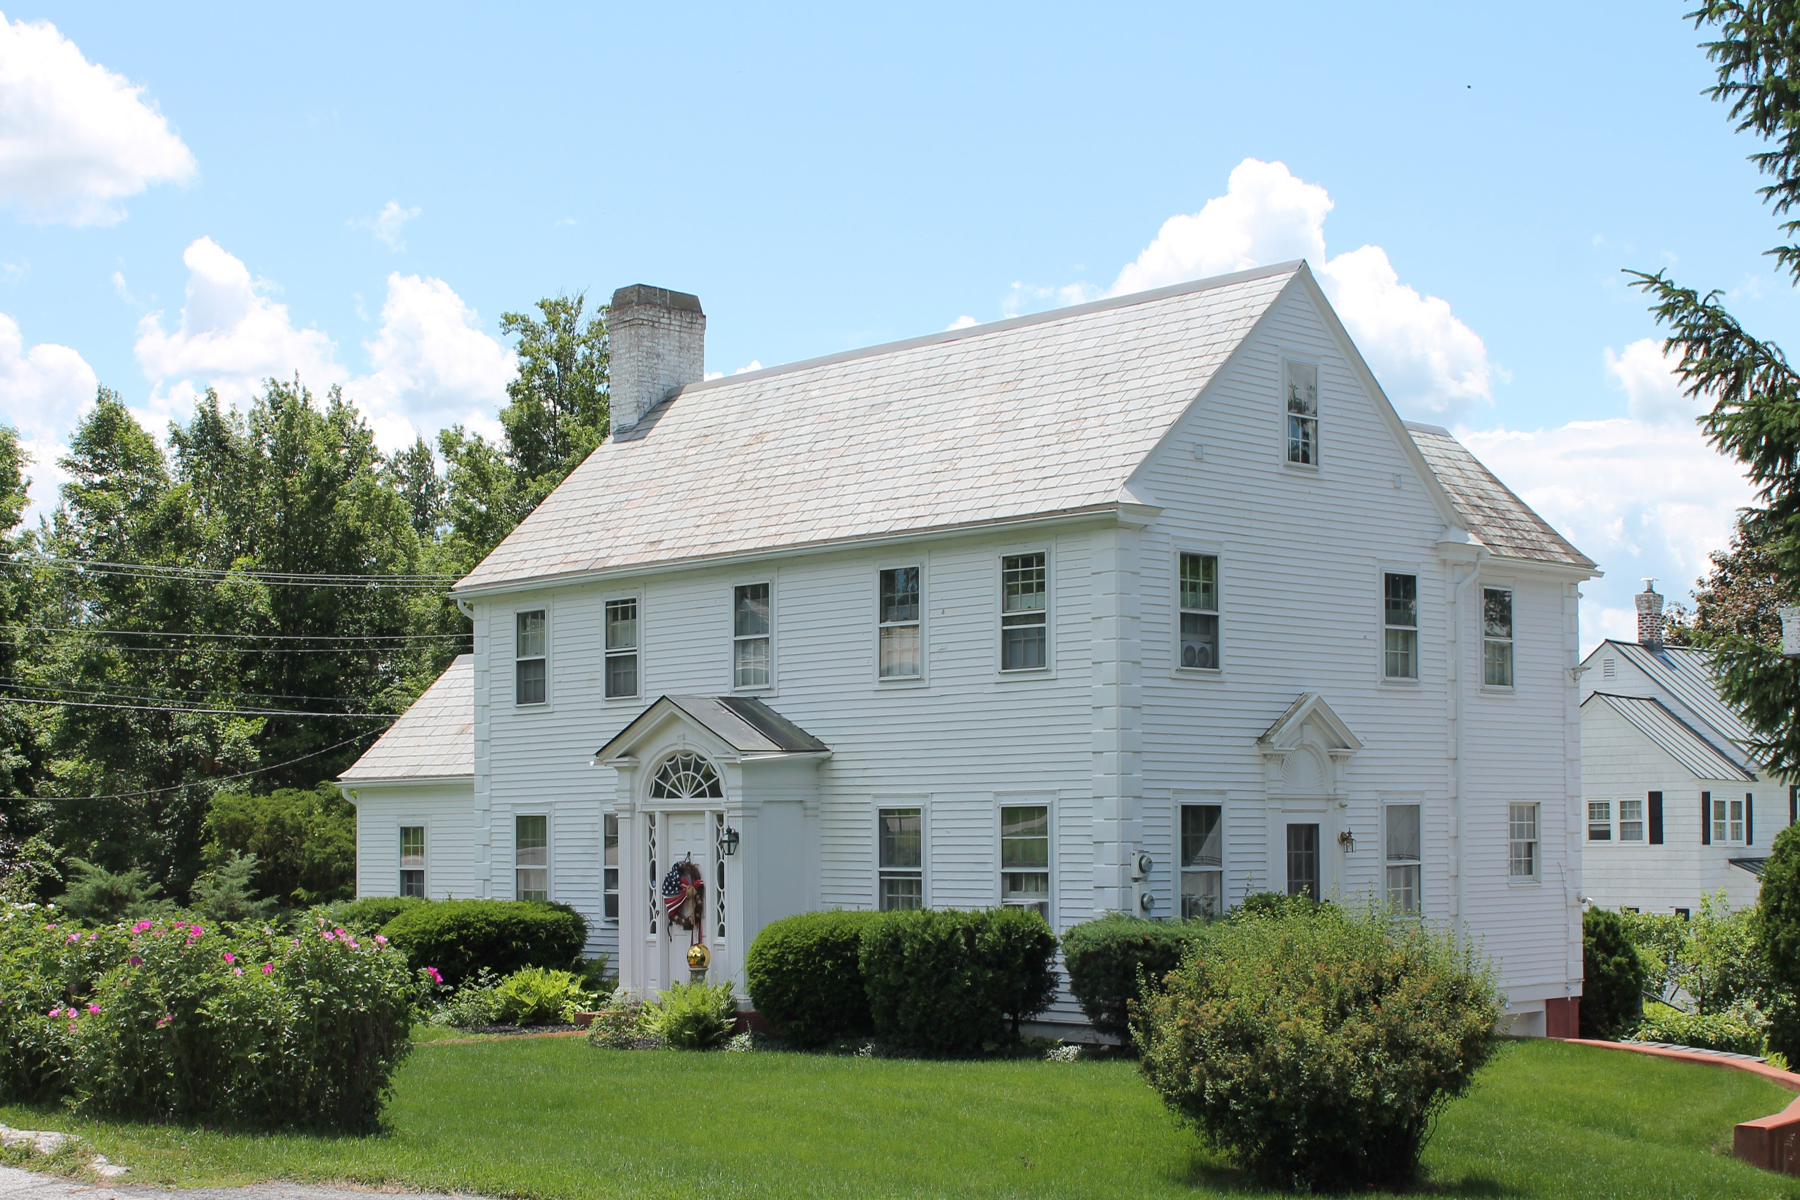 Single Family Home for Sale at Bellevue Colonial 135 Bellevue Ave Rutland, Vermont 05701 United States